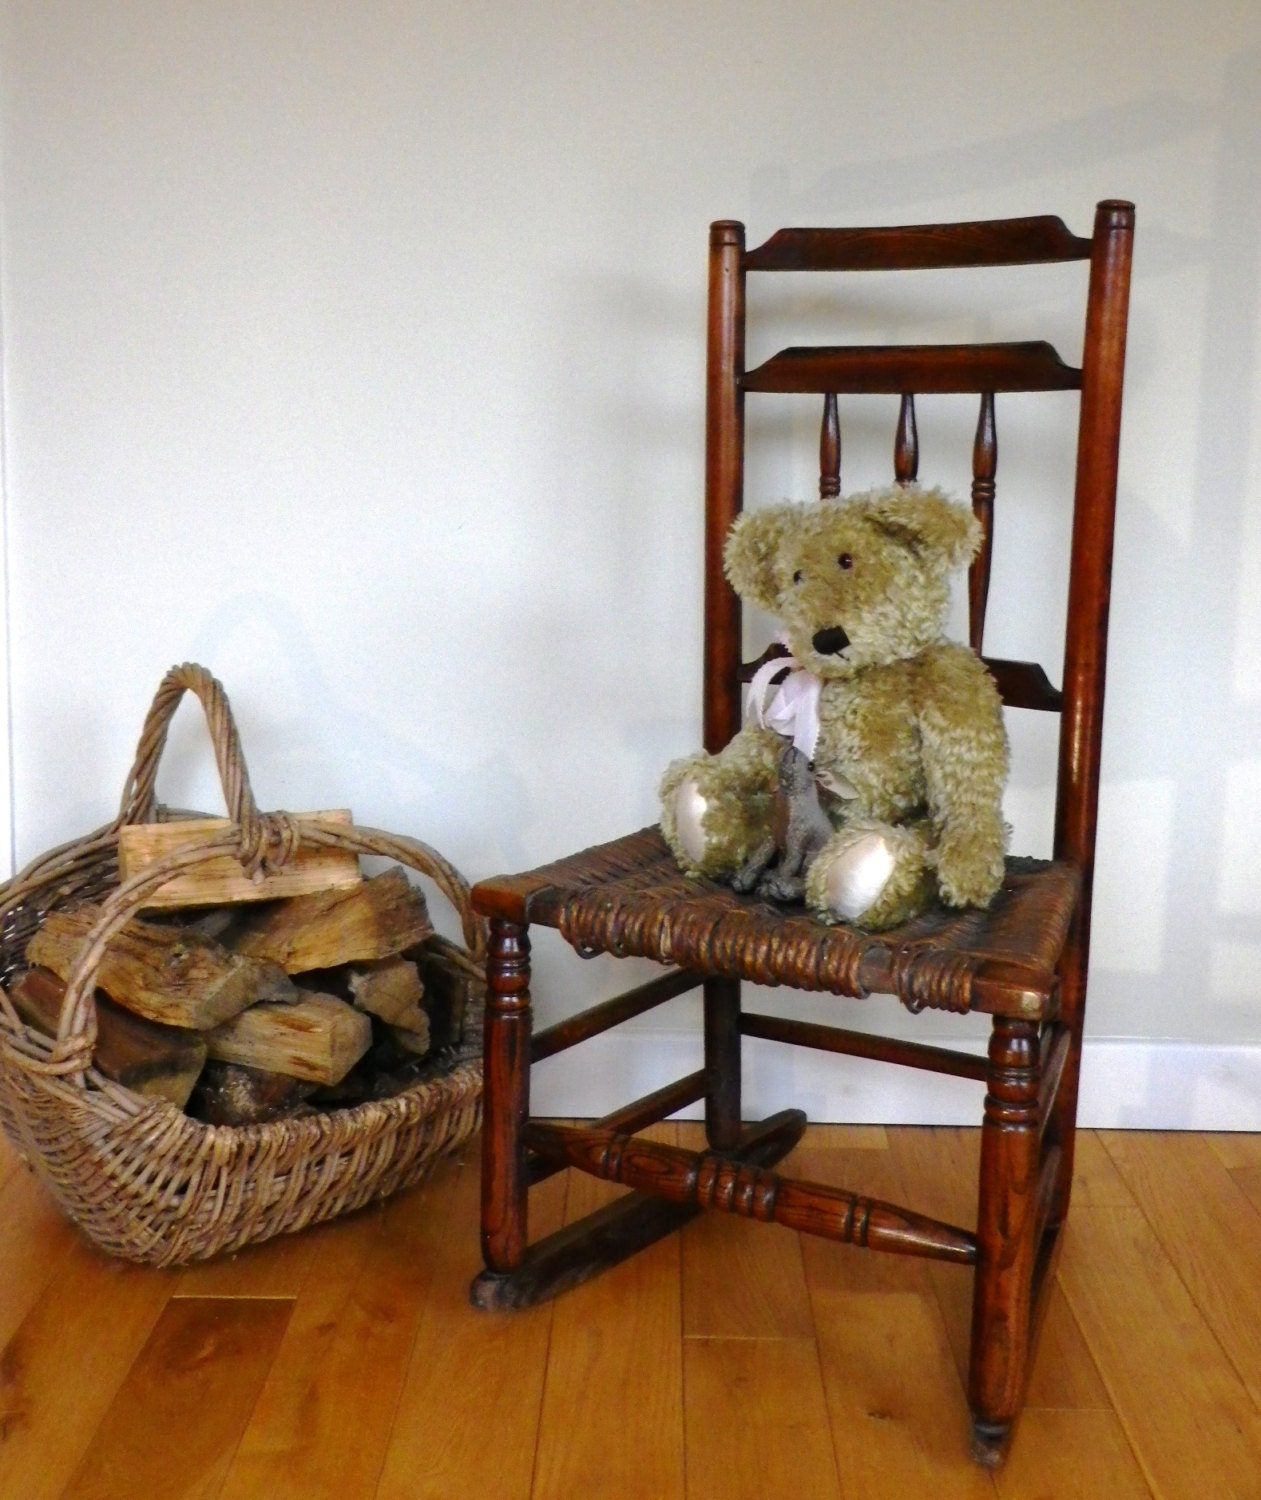 Rocking chair early 19th century oak and elm country rocking chair with wicker seat antique rocking chair